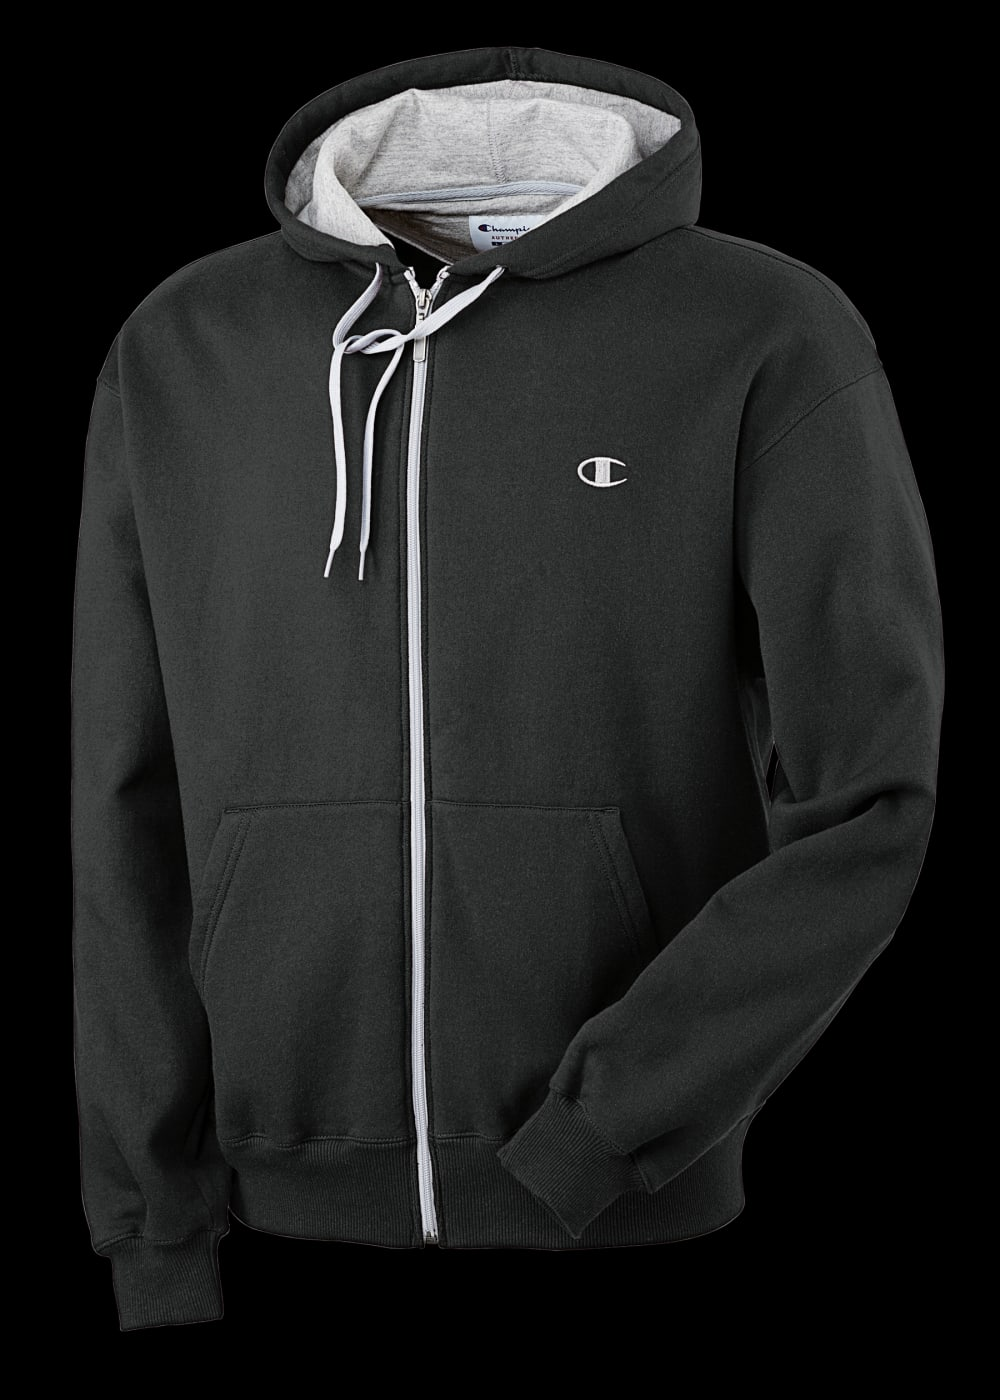 CHAMPION Men's Eco Fleece Full-Zip Hoodie - BLACK-003